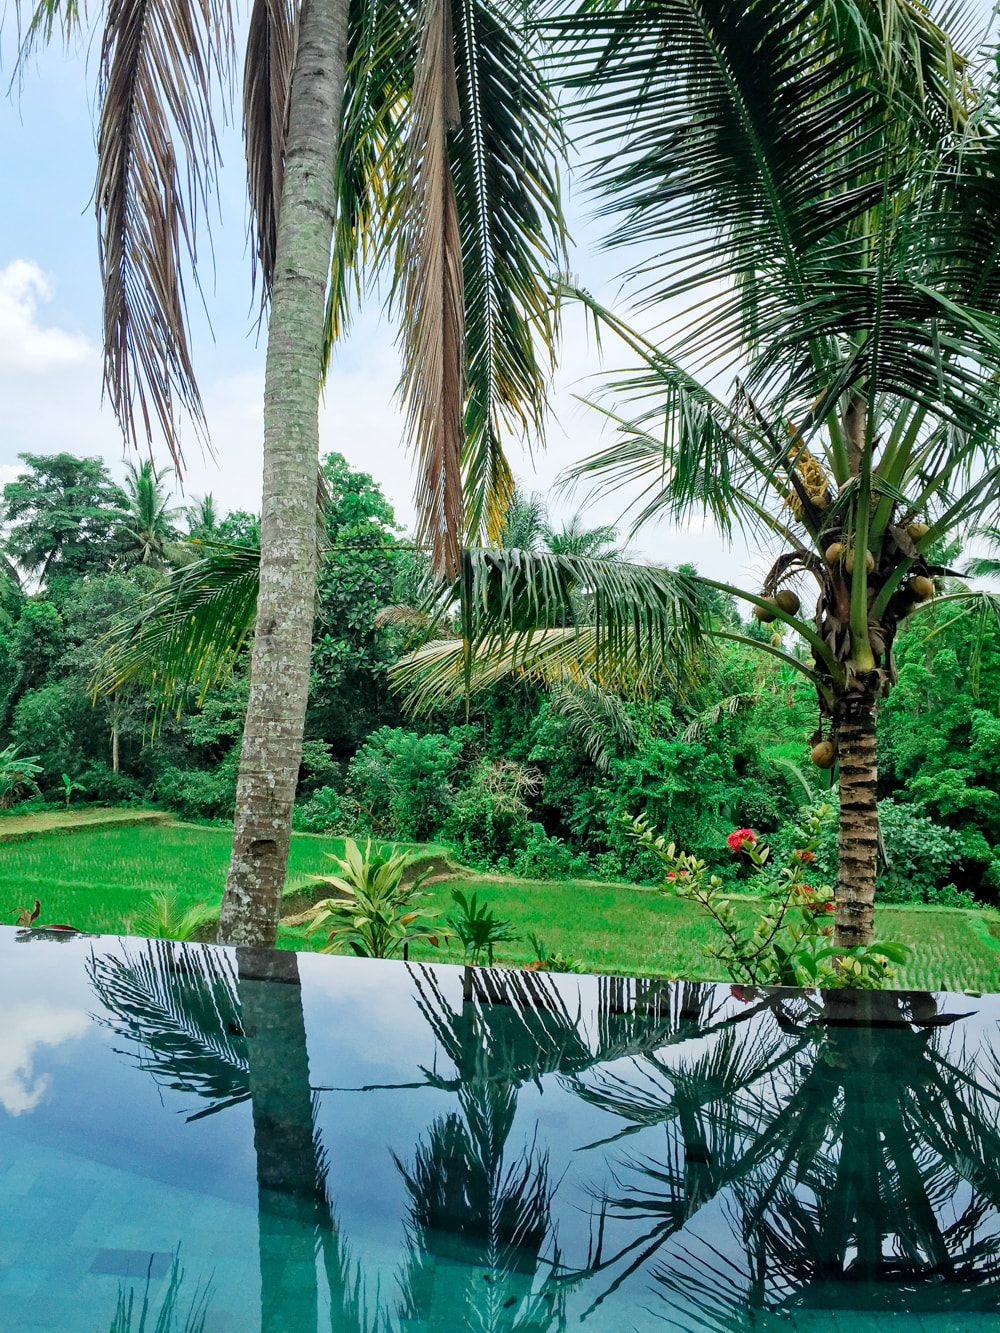 The view from the Govardana Villa's private infinity pool, overlooking rice paddy fields. Dwaraka, The Royal Villas, Ubud, Bali, Indonesia.